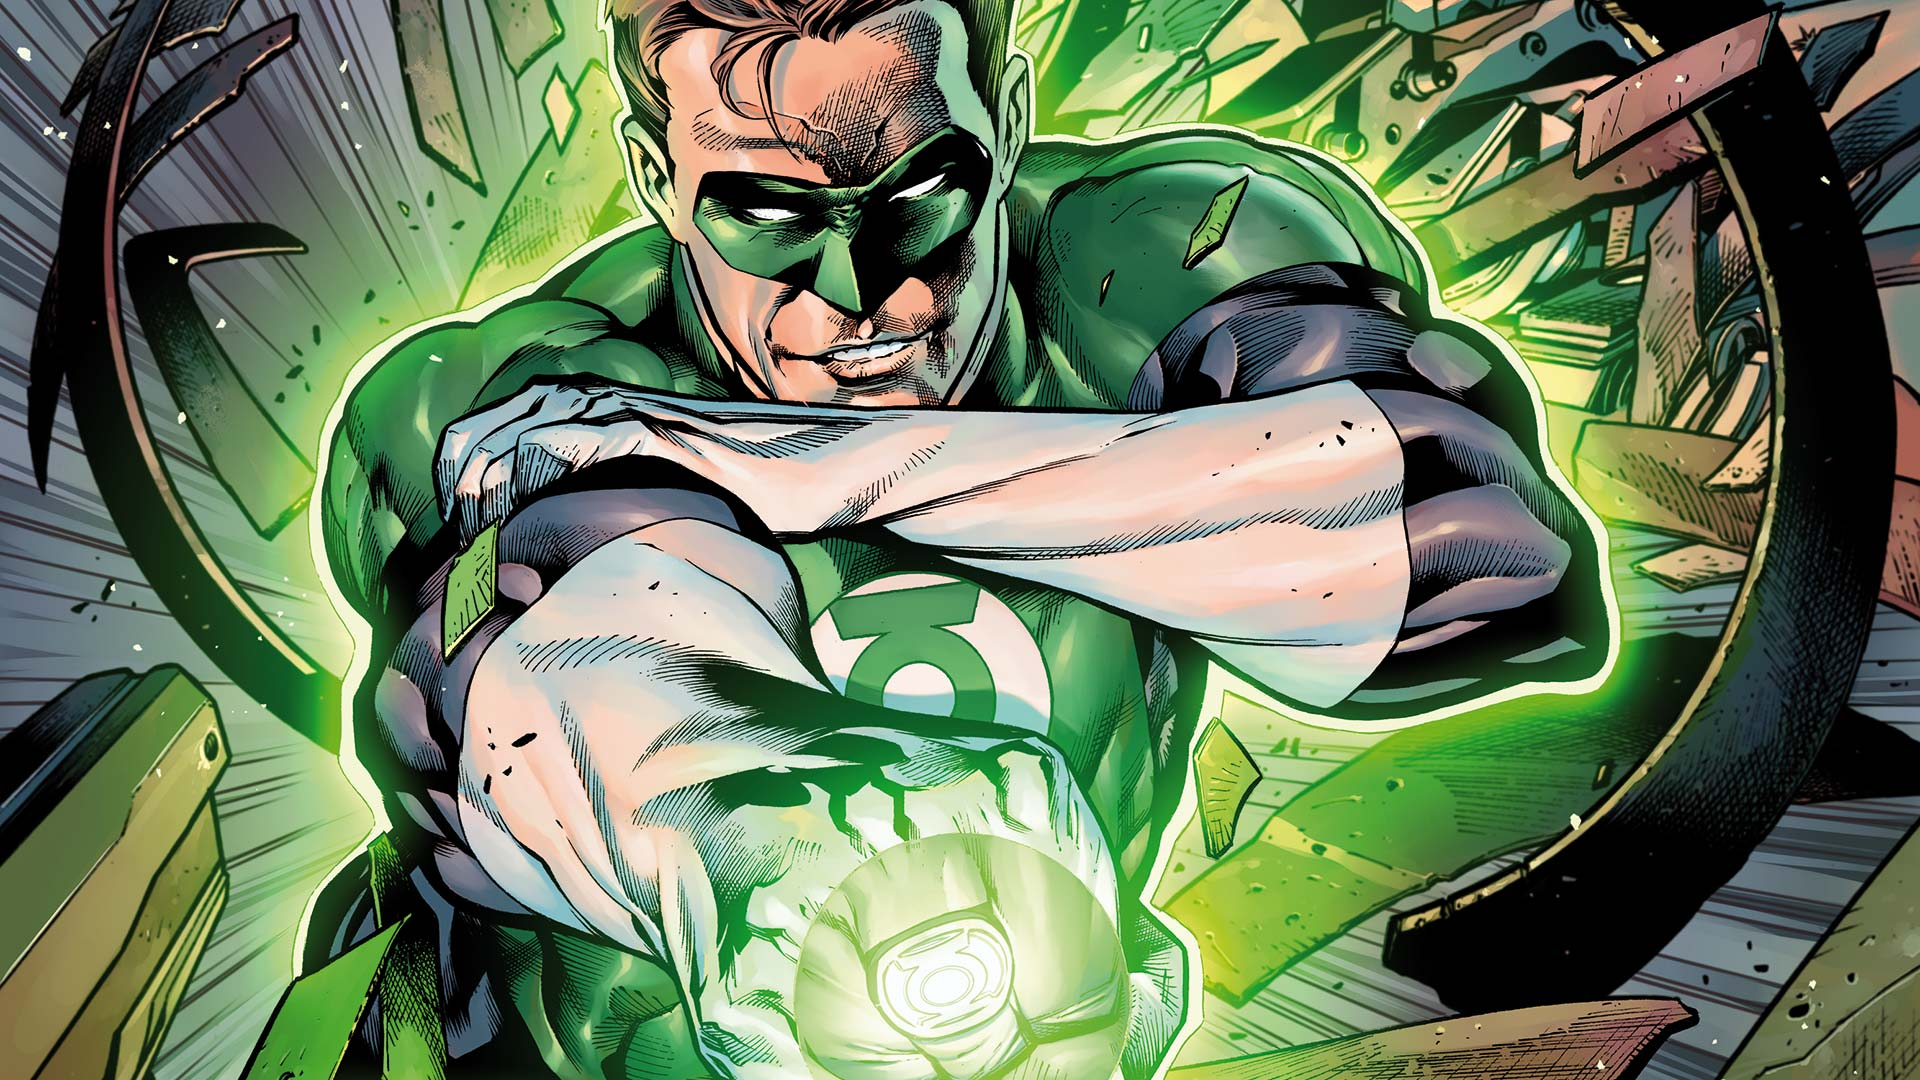 Most Powerful Ring In Green Lantern